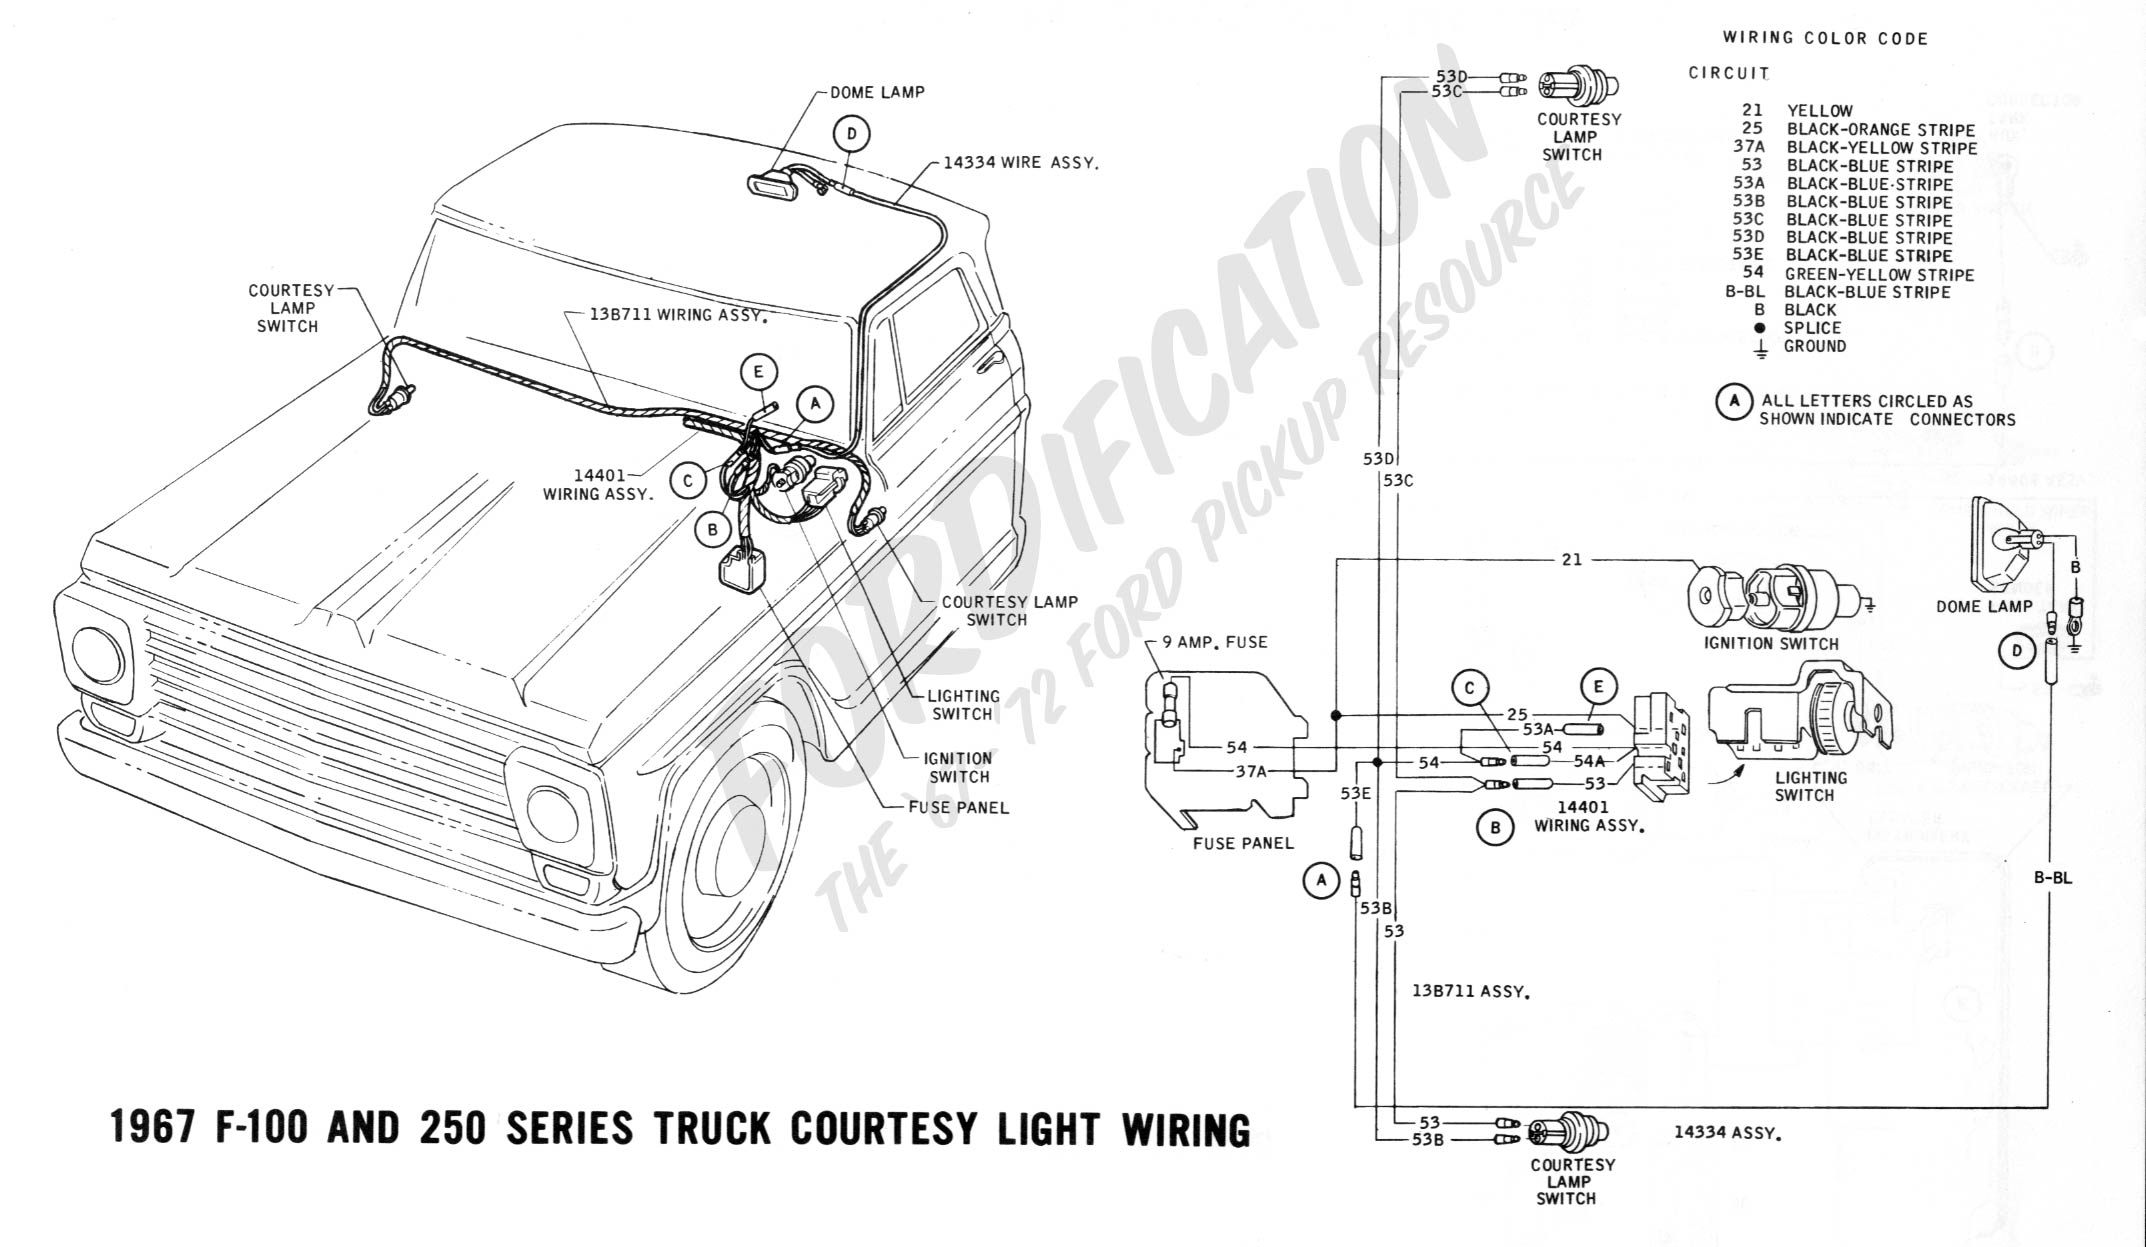 Wiring in Ignition Switch in 1966 F100 - Ford Truck Enthusiasts Forums